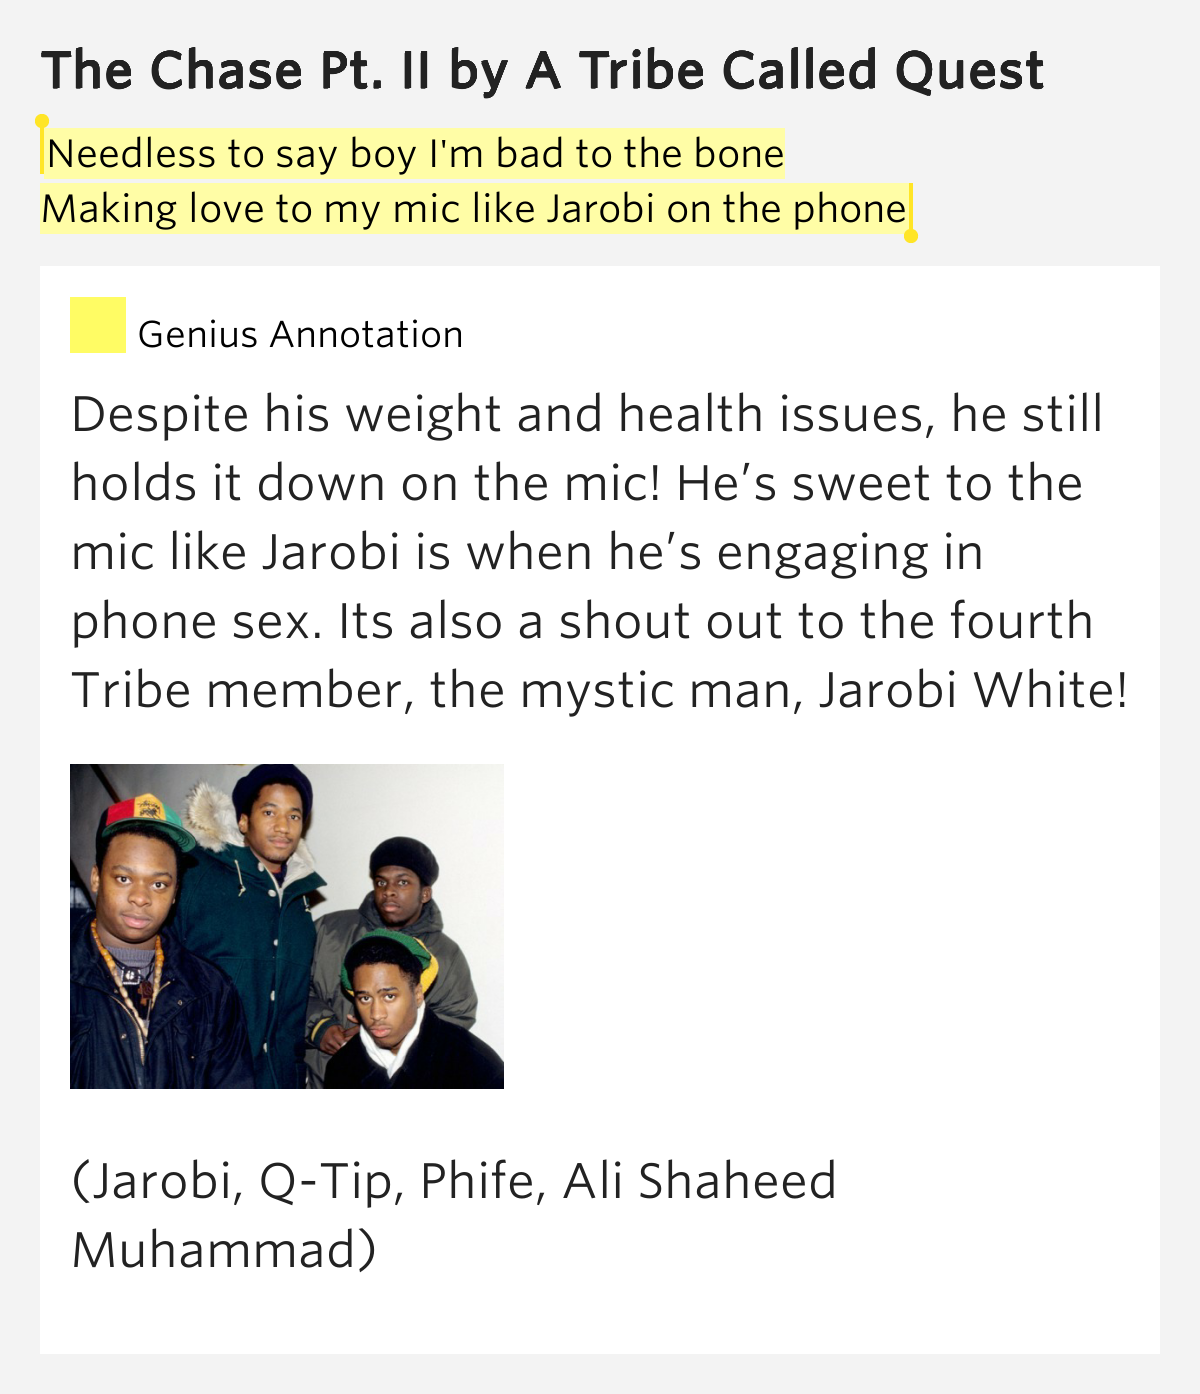 a tribe called quest lyrics - photo #6